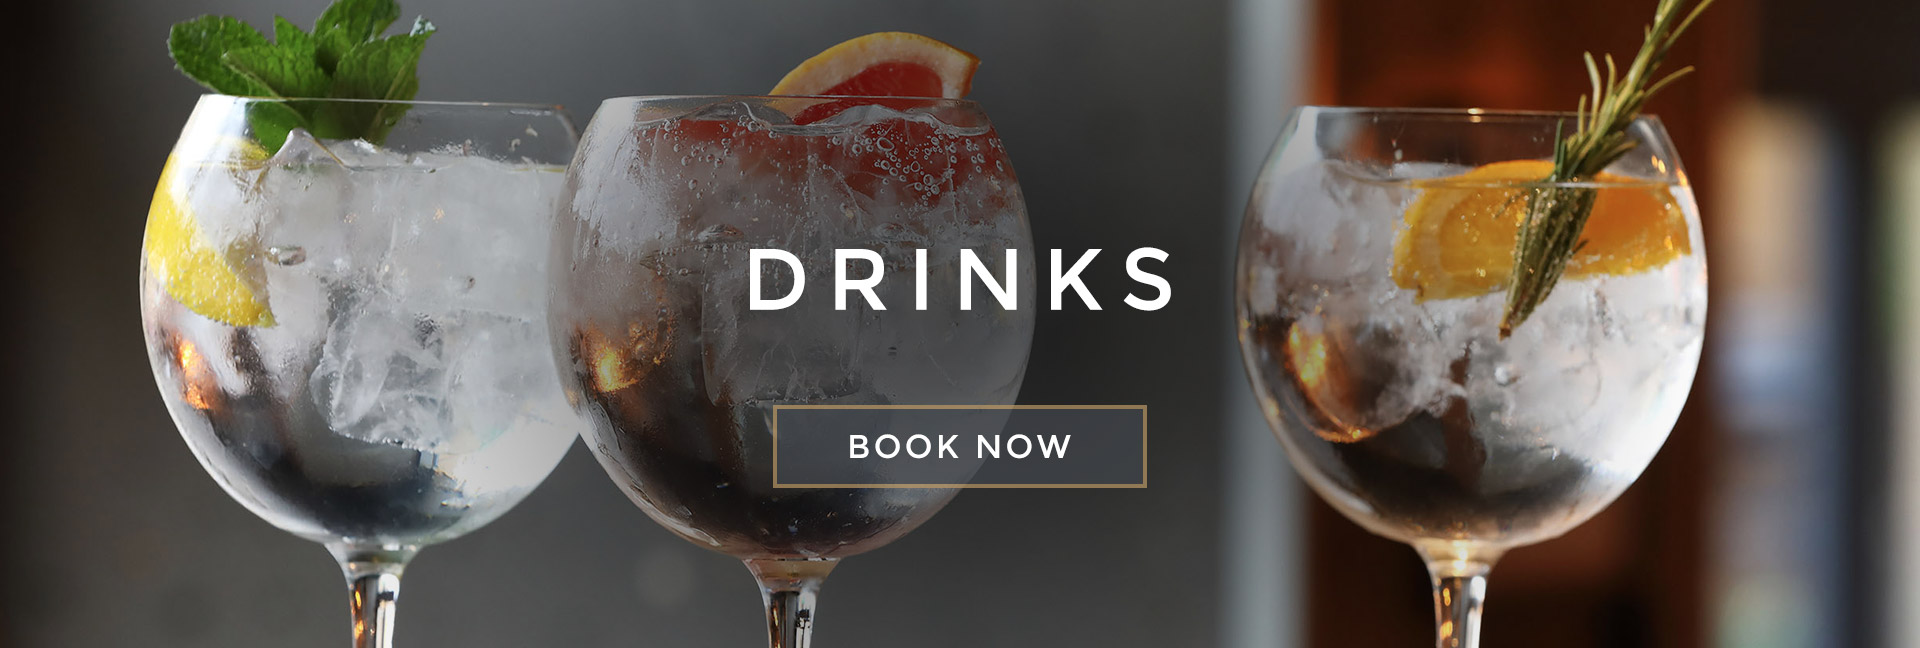 Drinks at All Bar One Millennium Square Leeds - Book your table